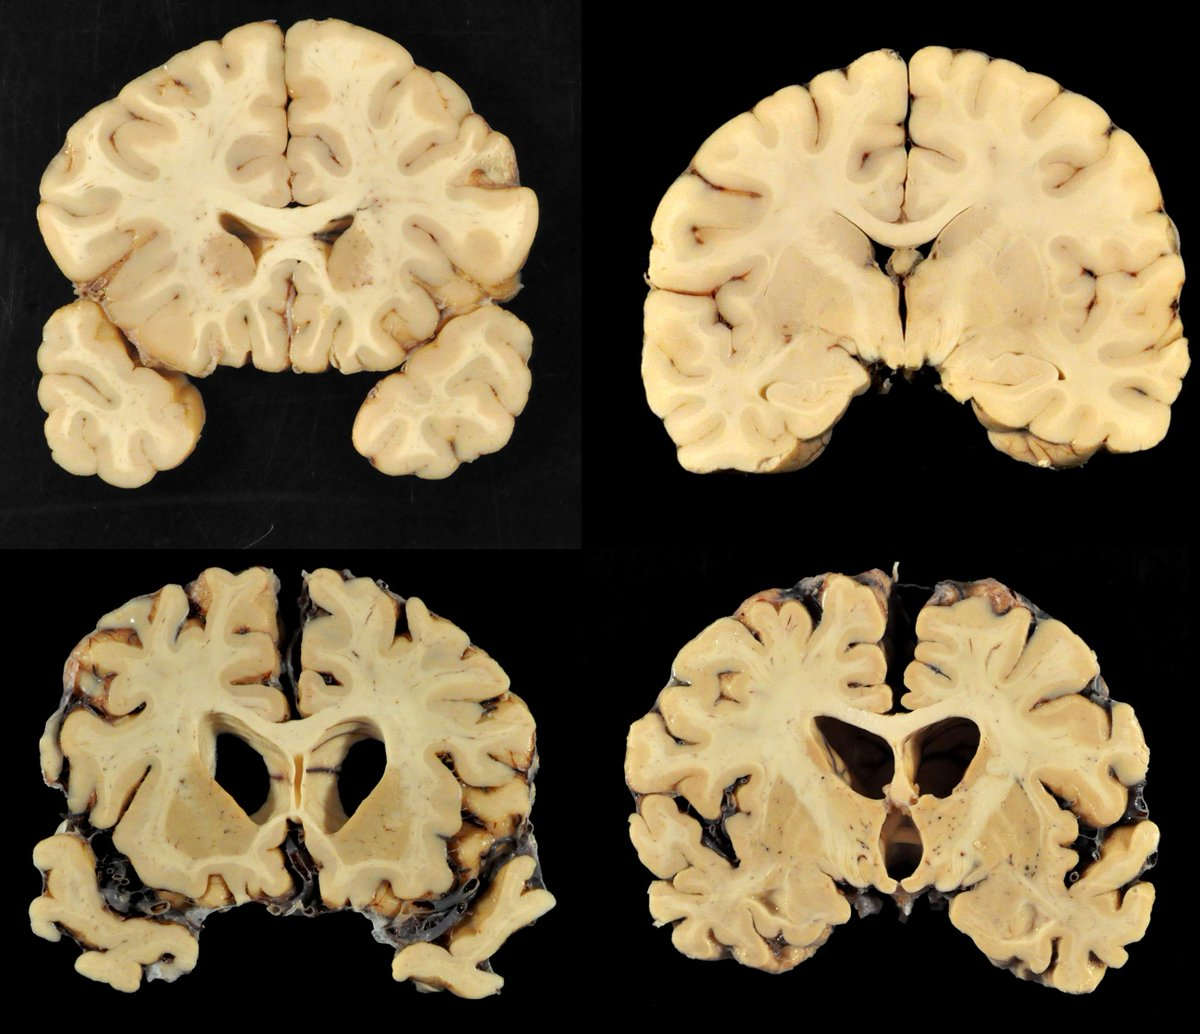 catalog the normal development of the brain Studies of normal brain development reveal critical areas of the brain that develop during late adolescence, and our study shows that heavy cannabis use is associated with damage in those brain regions, said study leader manzar ashtari of the children's hospital of philadelphia.